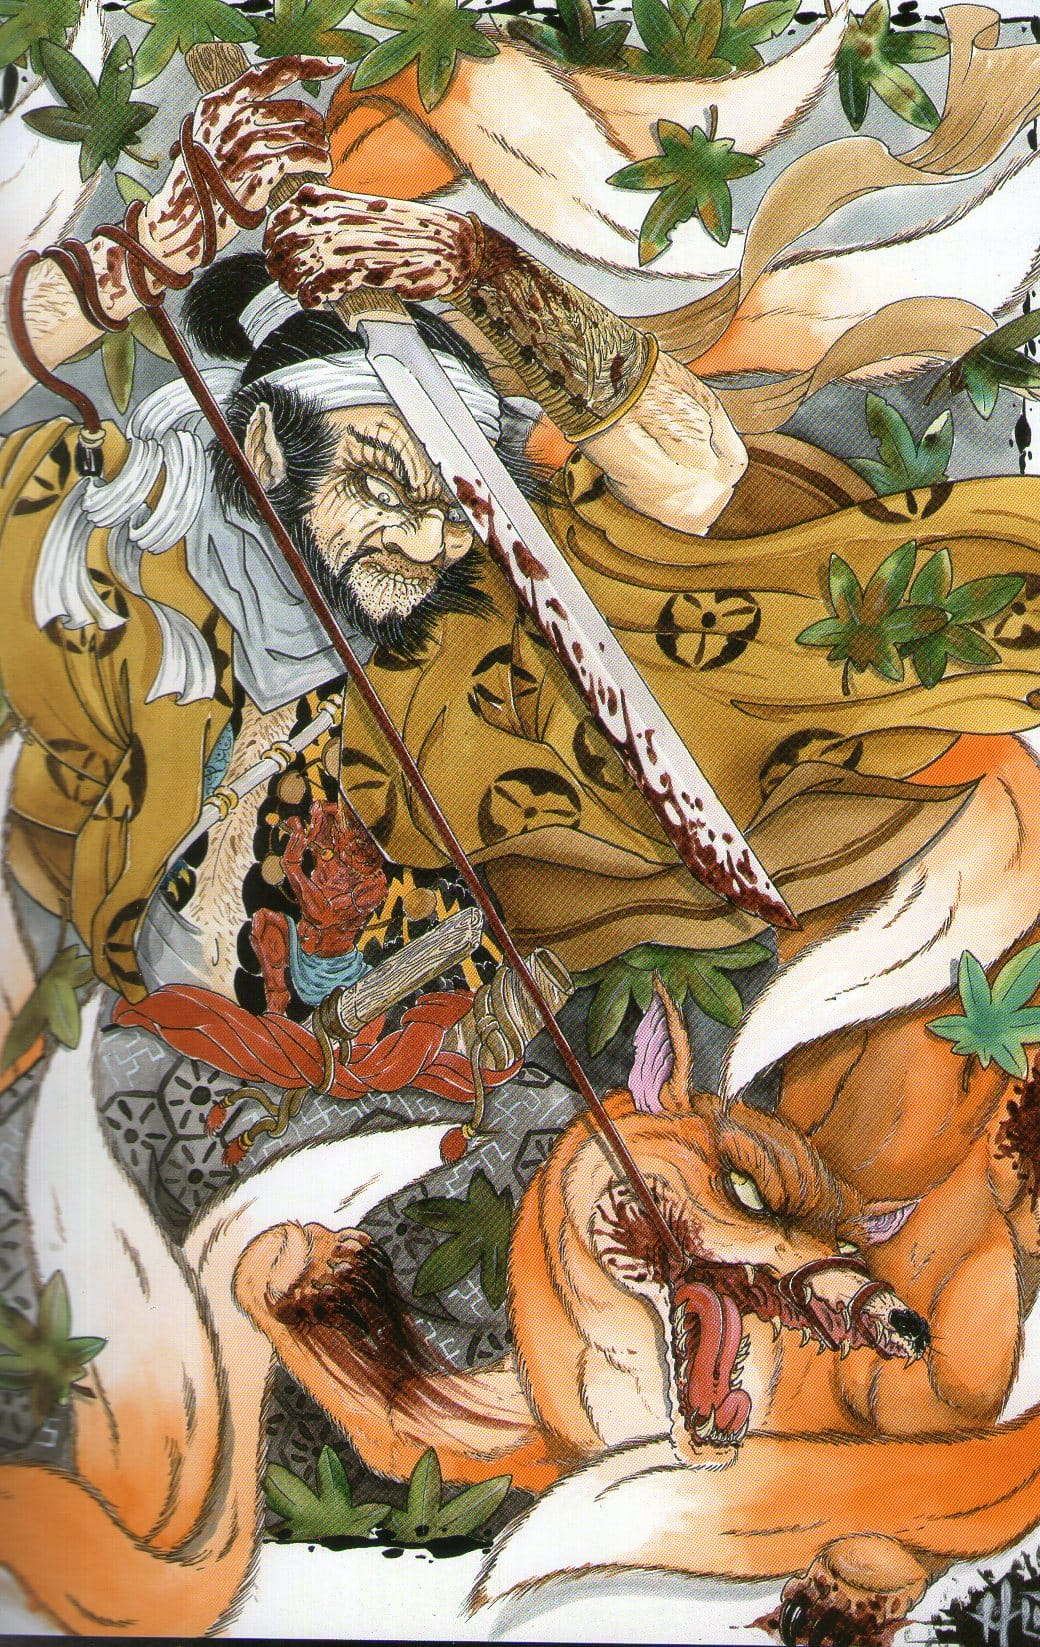 KITSUNE illustration by Uncle HO.